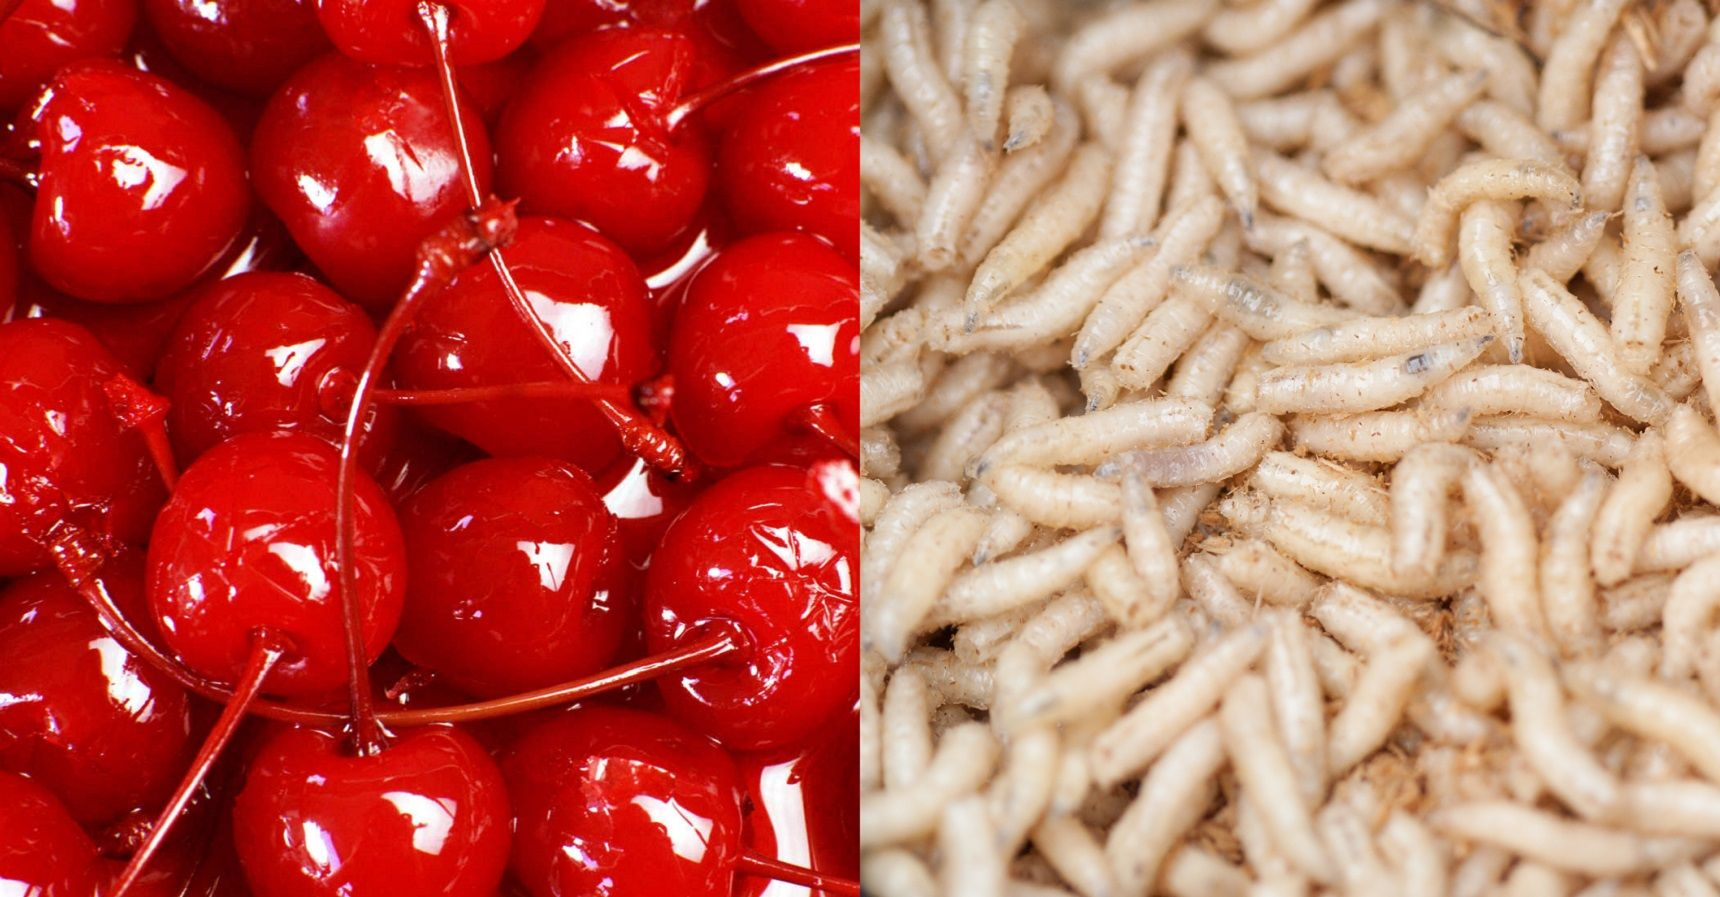 11 Of The Secretly Grossest Common Foods